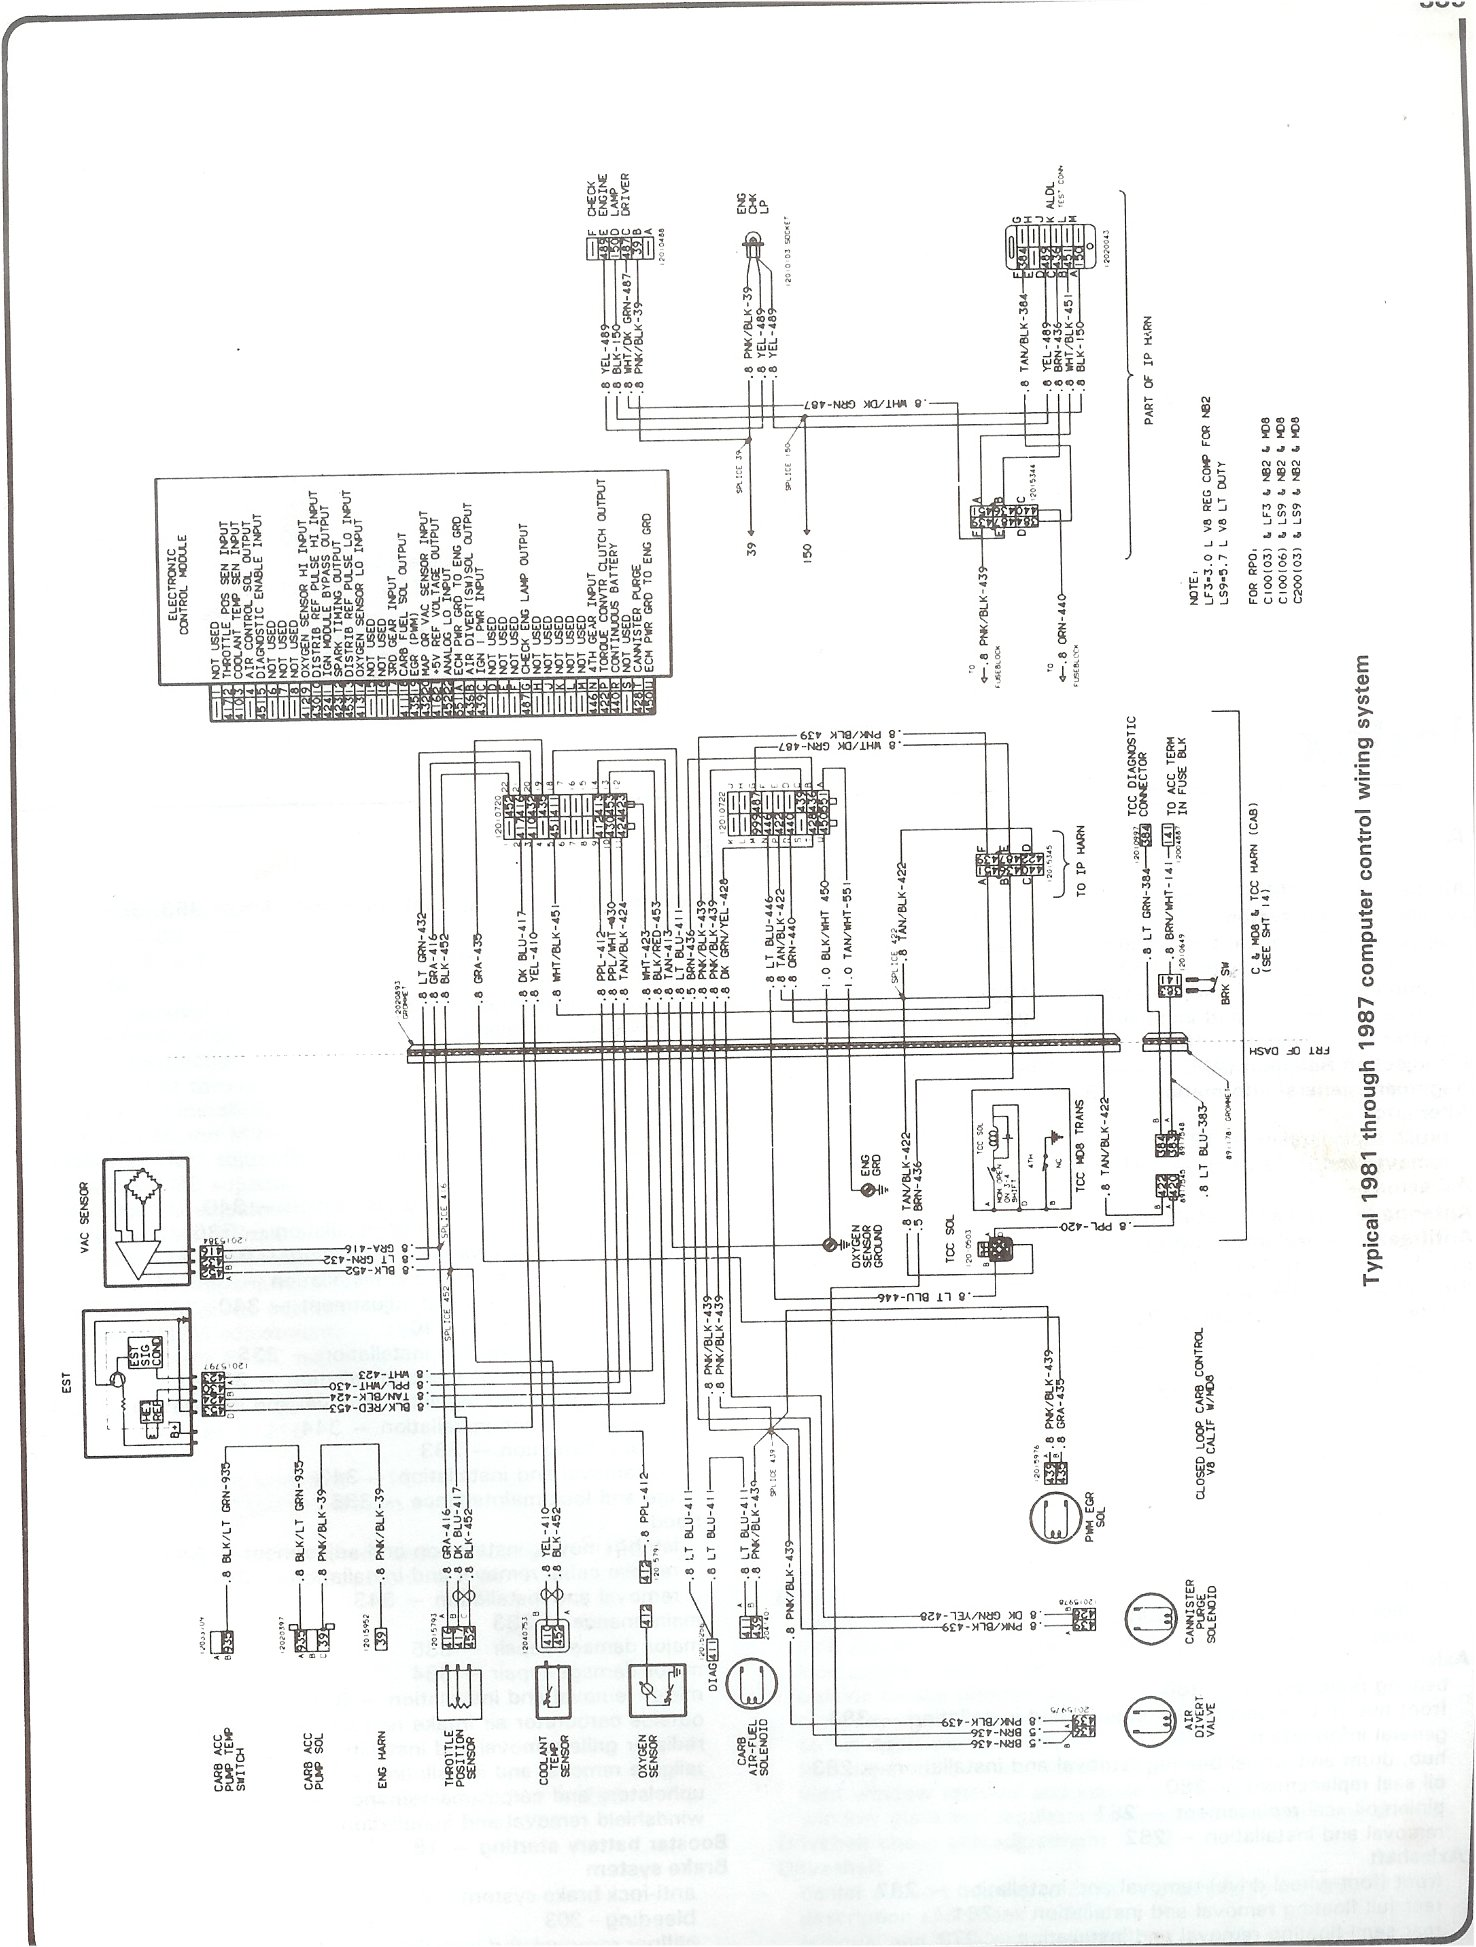 81 87_computer_control_wiring complete 73 87 wiring diagrams 1984 chevy truck electrical wiring diagram at edmiracle.co